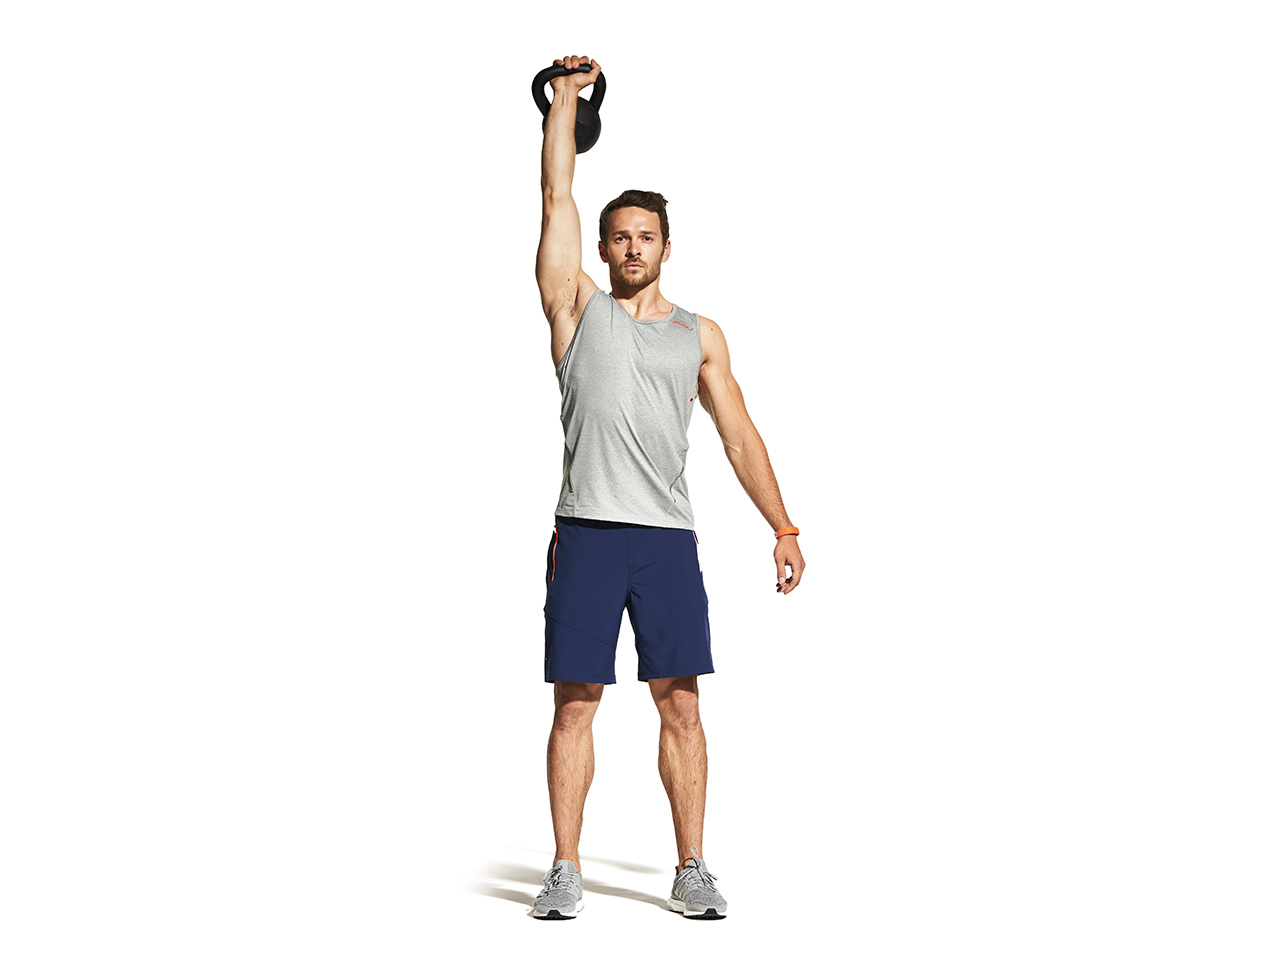 How does the exercise push the kettlebells?